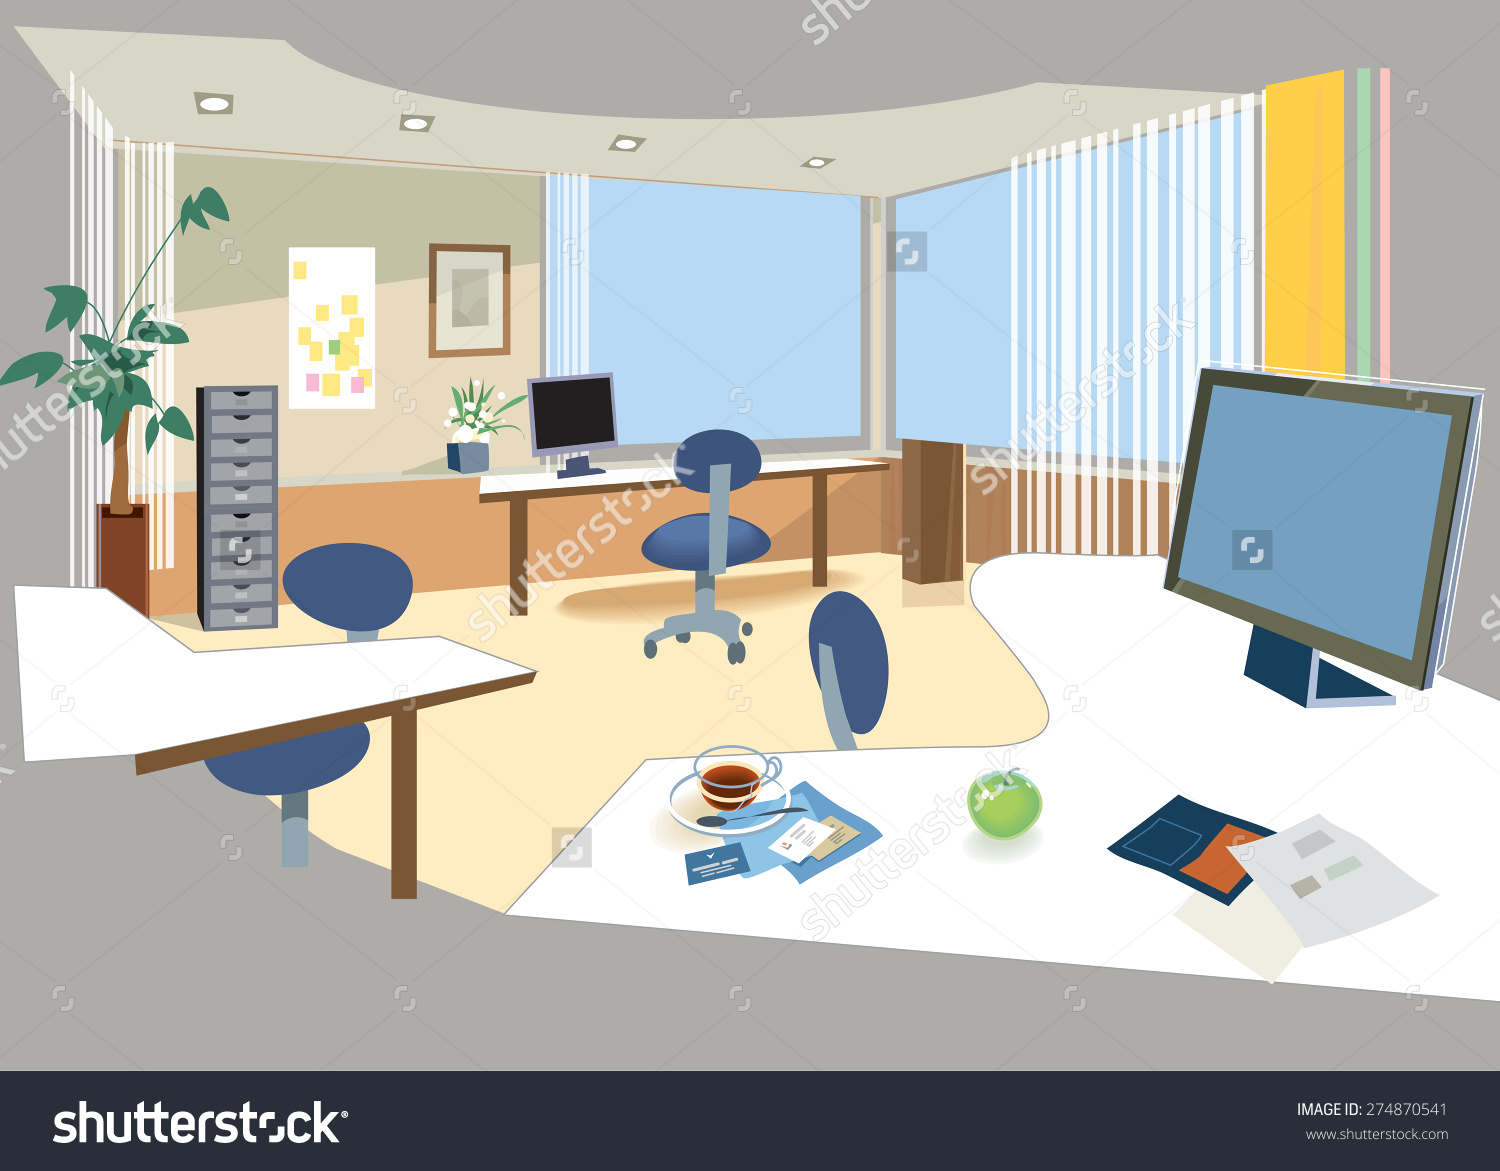 office room clipart 9 | Clipart Station